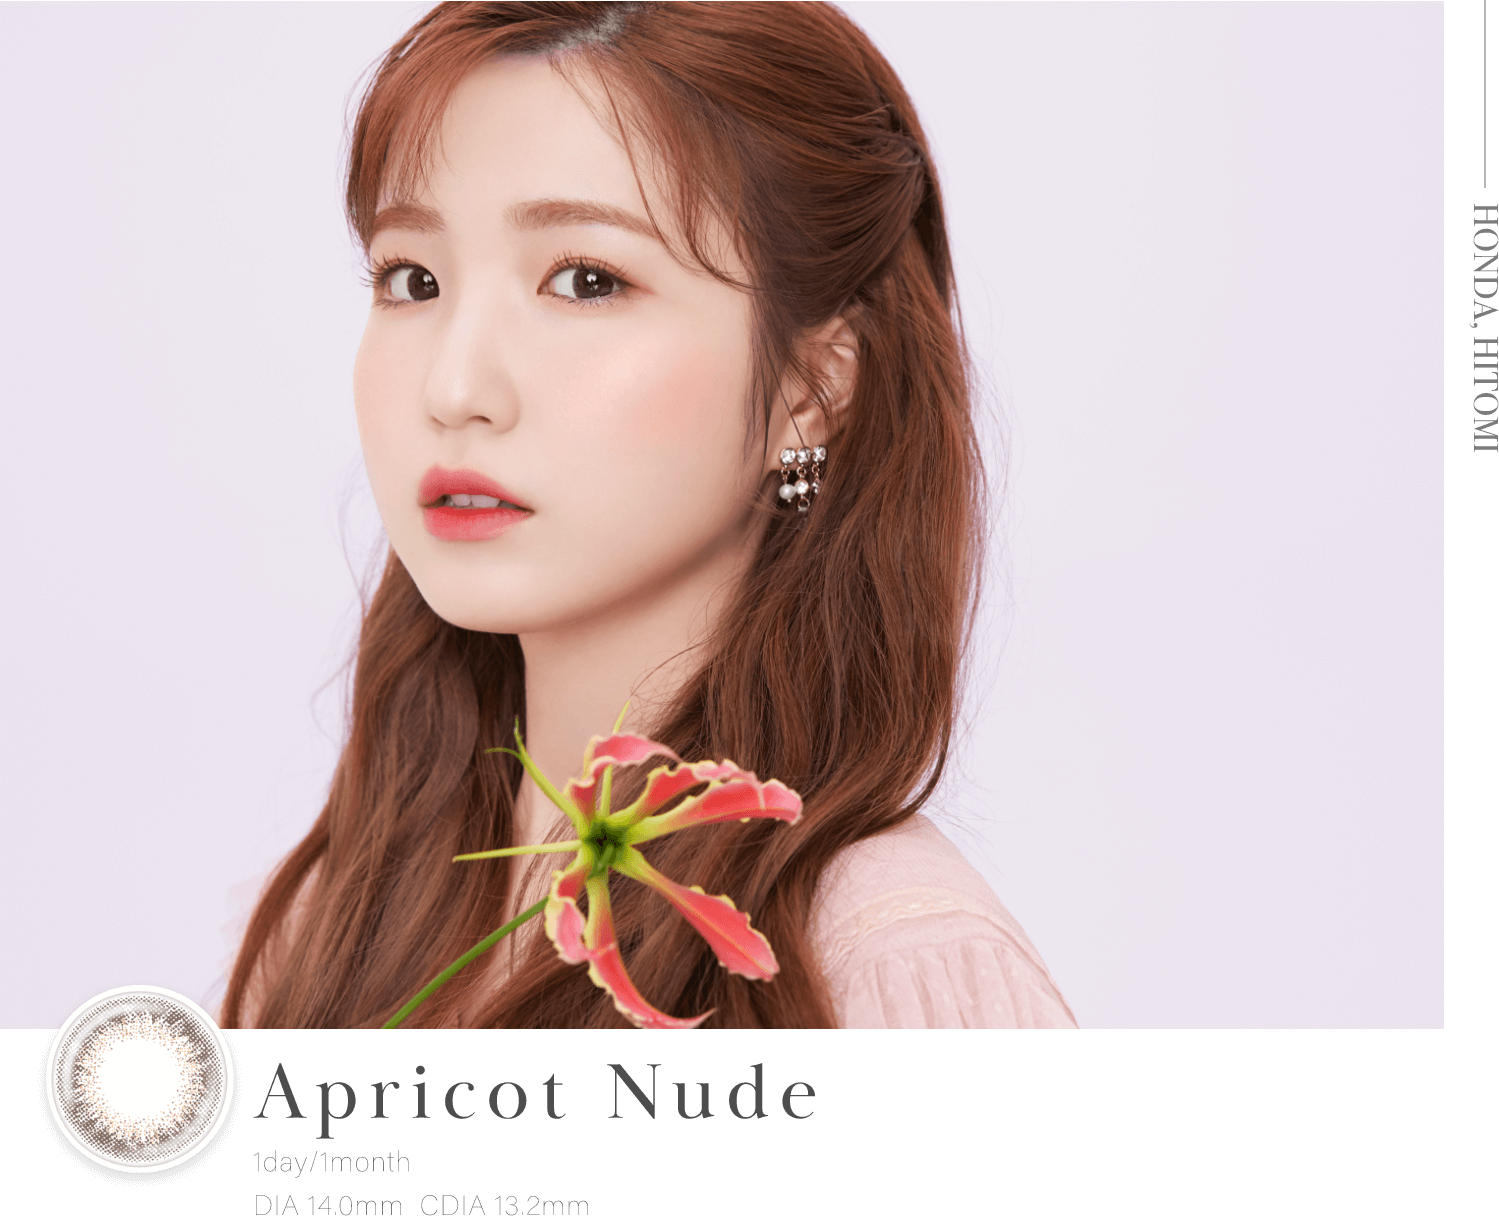 Apricot Nude